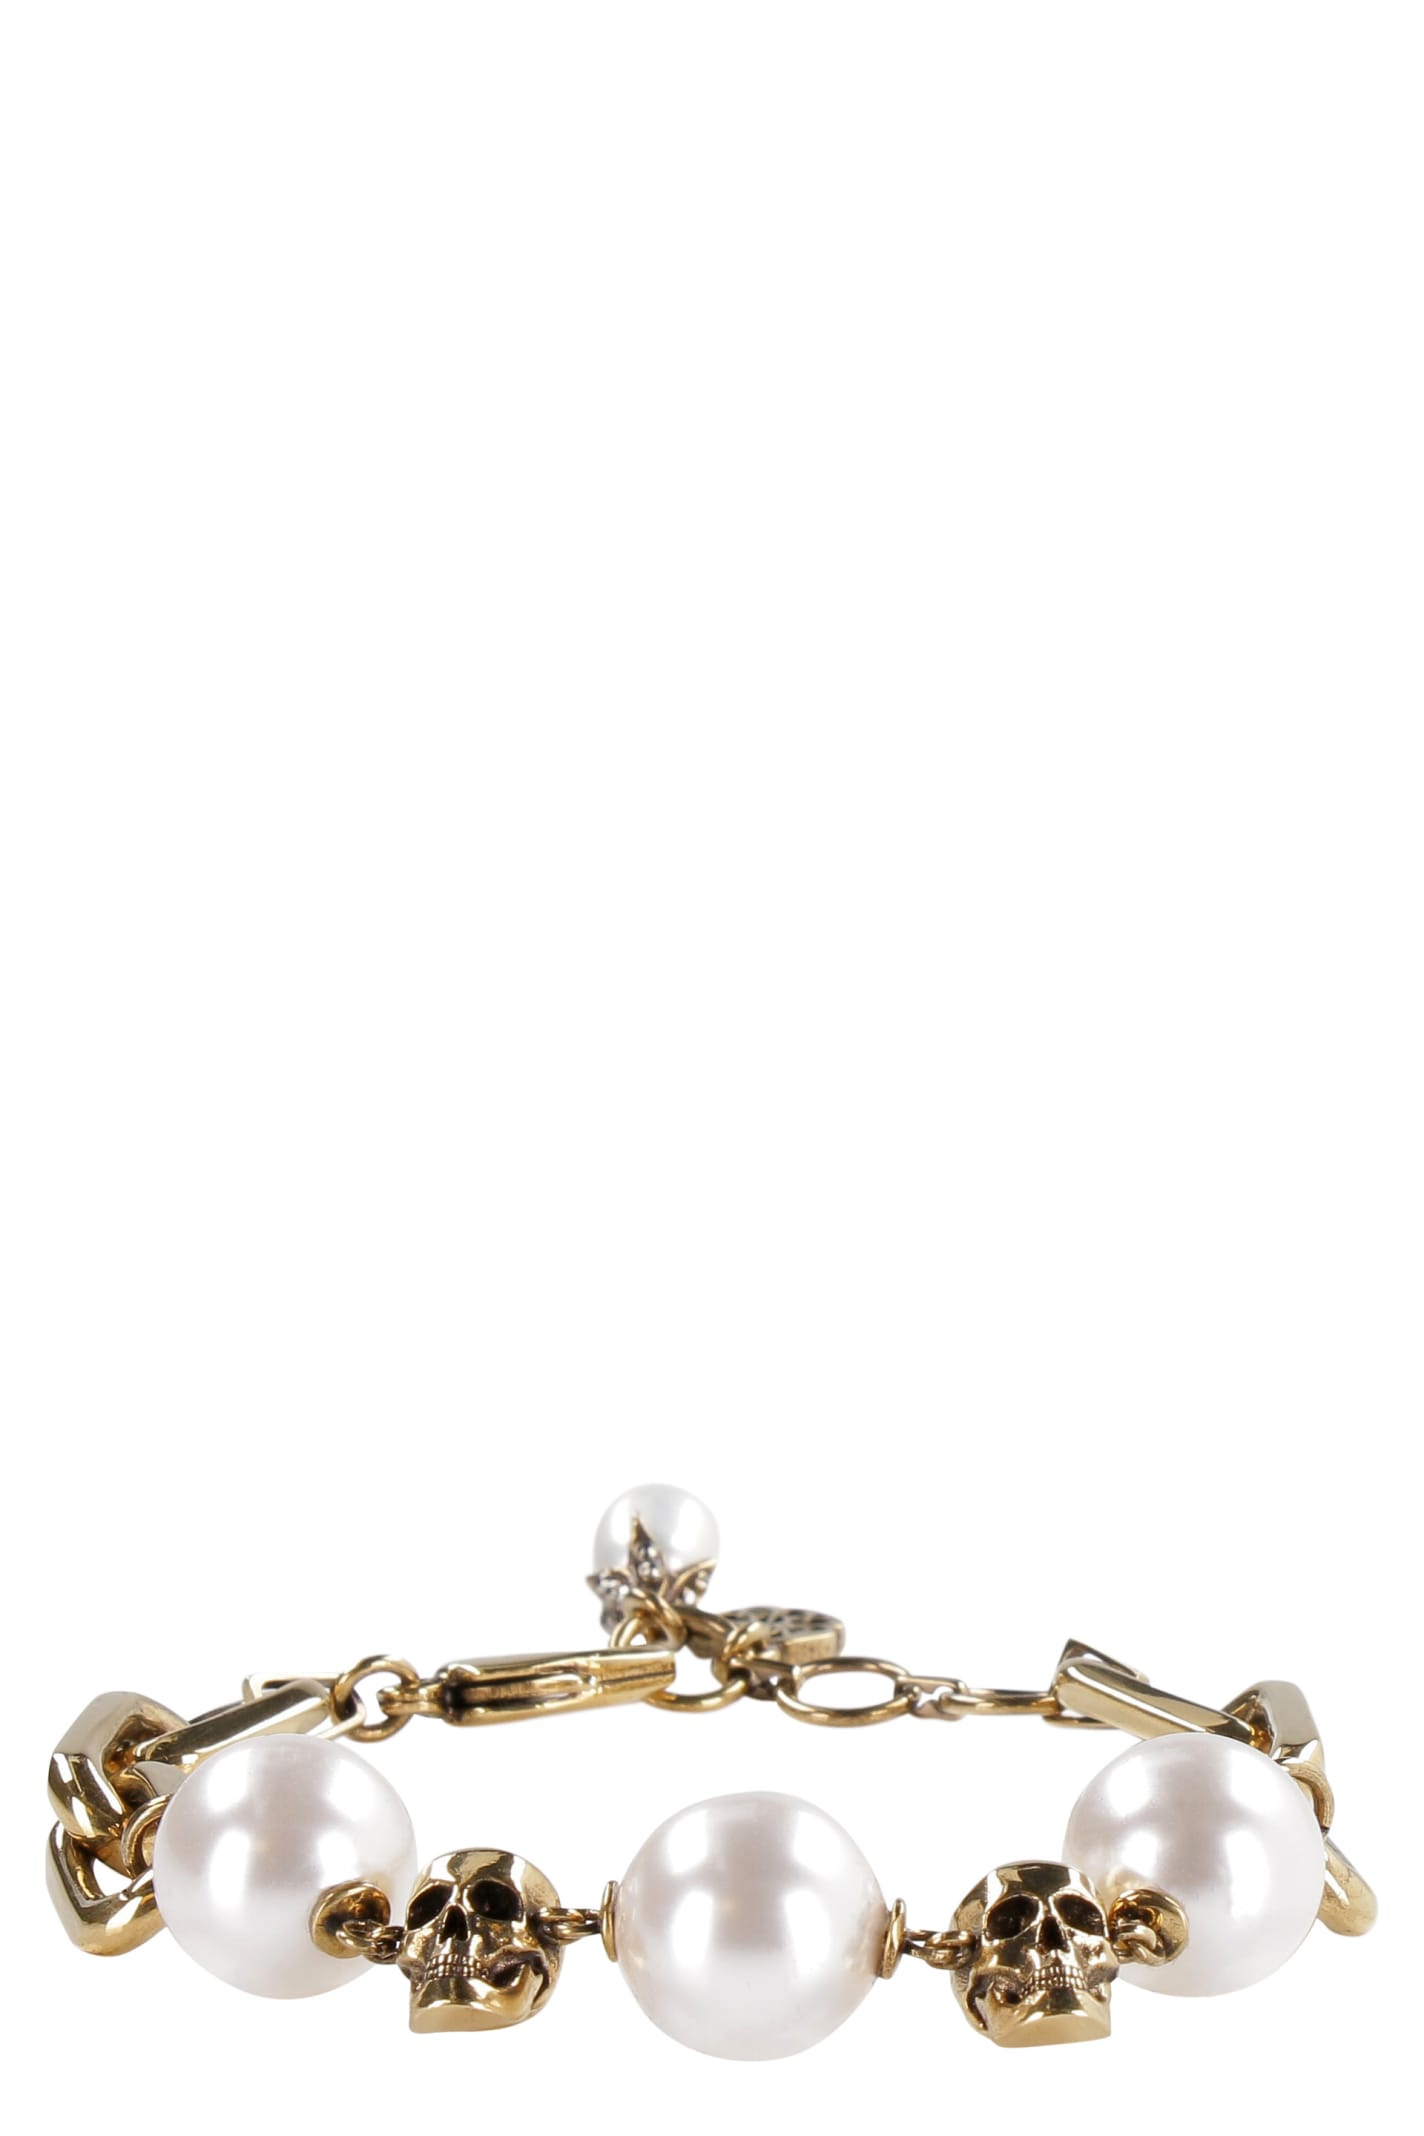 Alexander Mcqueen CHAIN BRACELET WITH PEARLS